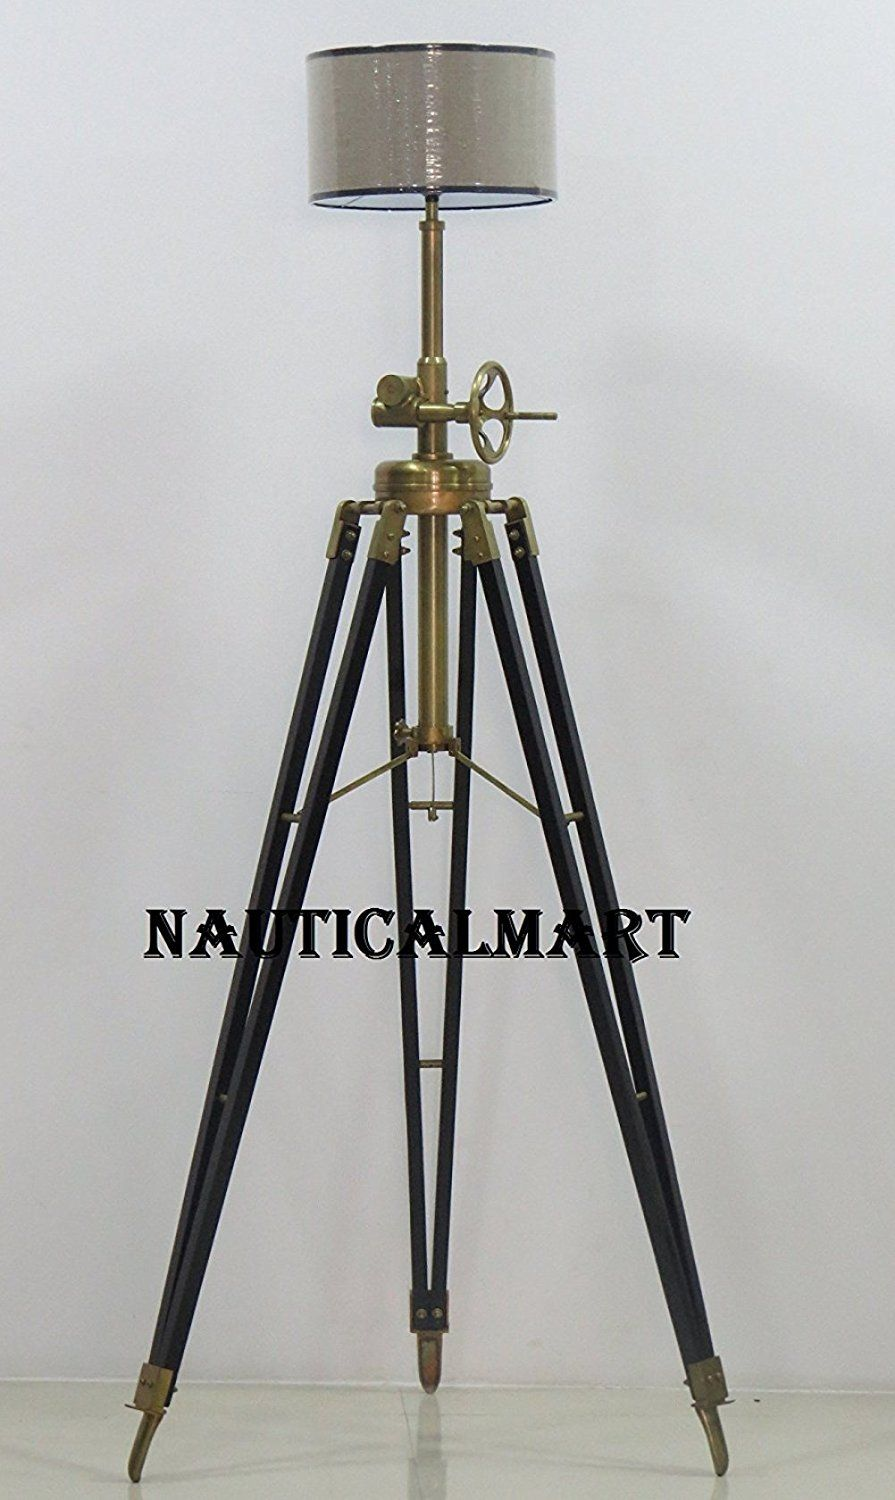 Marine designer royal tripod floor lamp by nauticalmart amazon marine designer royal tripod floor lamp by nauticalmart amazon lighting aloadofball Gallery